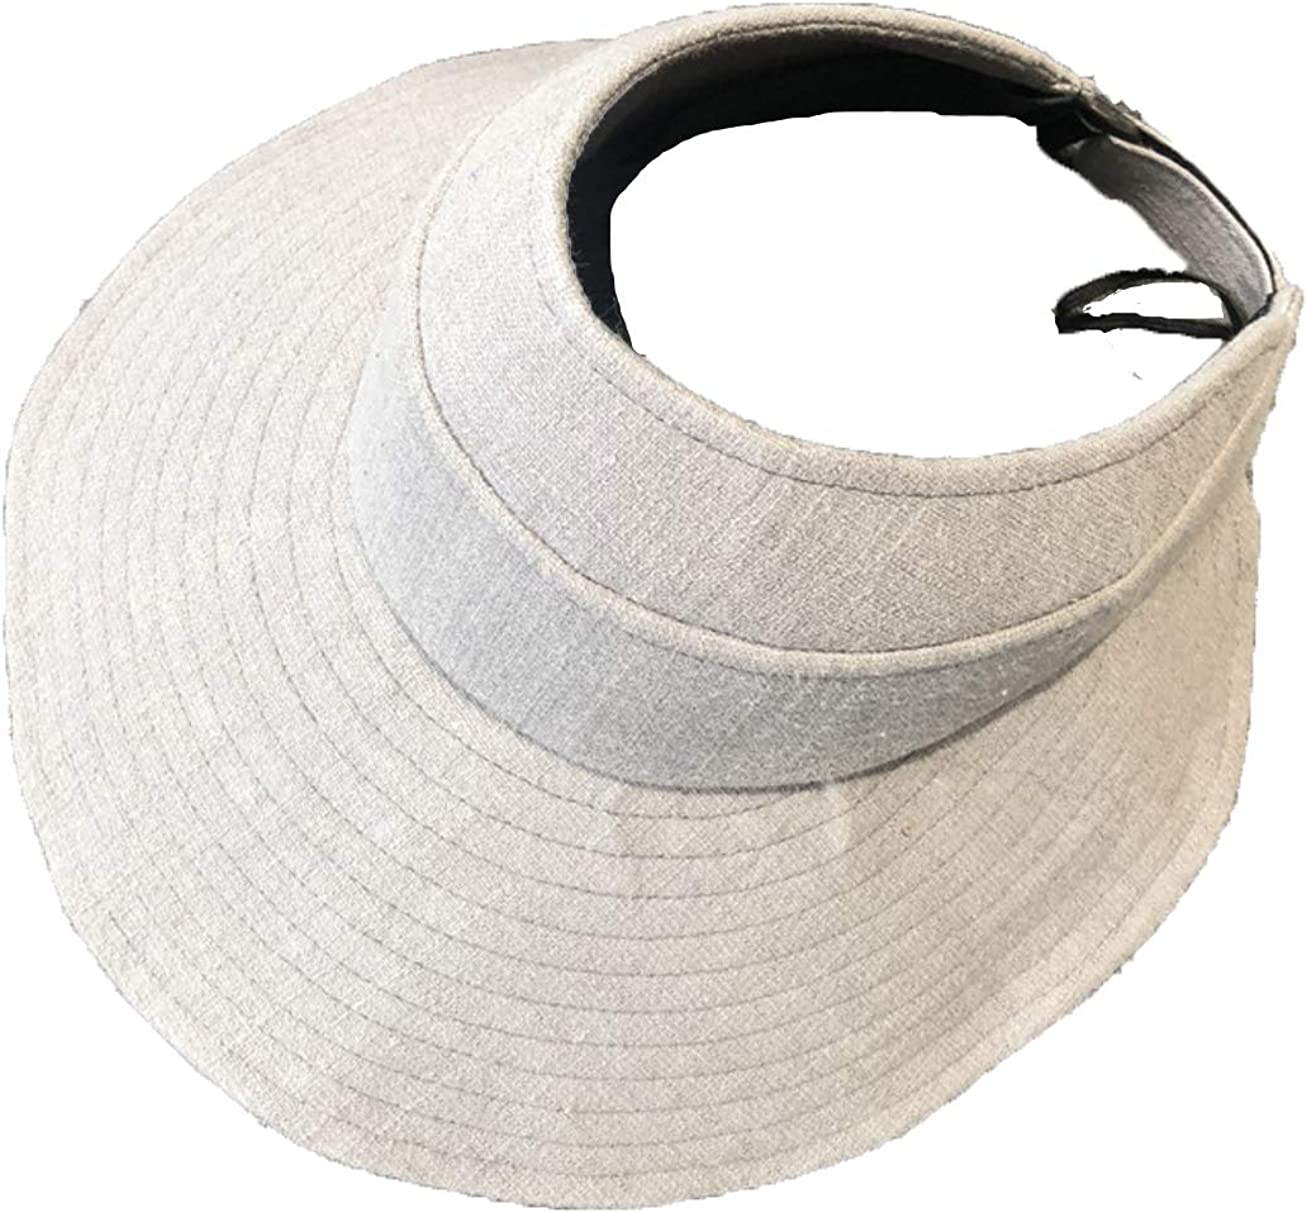 Simple Topless Sun Protection Hat Men and Women Outdoor Sun Hat Folding Cap Portable Foldable Sunhat